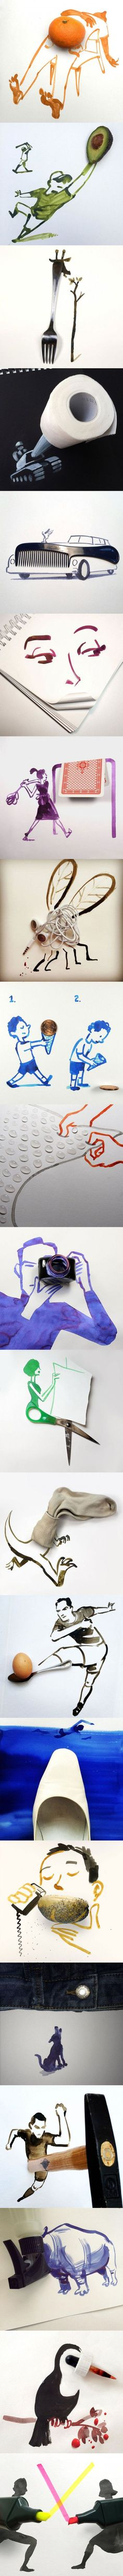 21 Creative Drawings Completed Using Everyday Objects By Christoph Niemann: